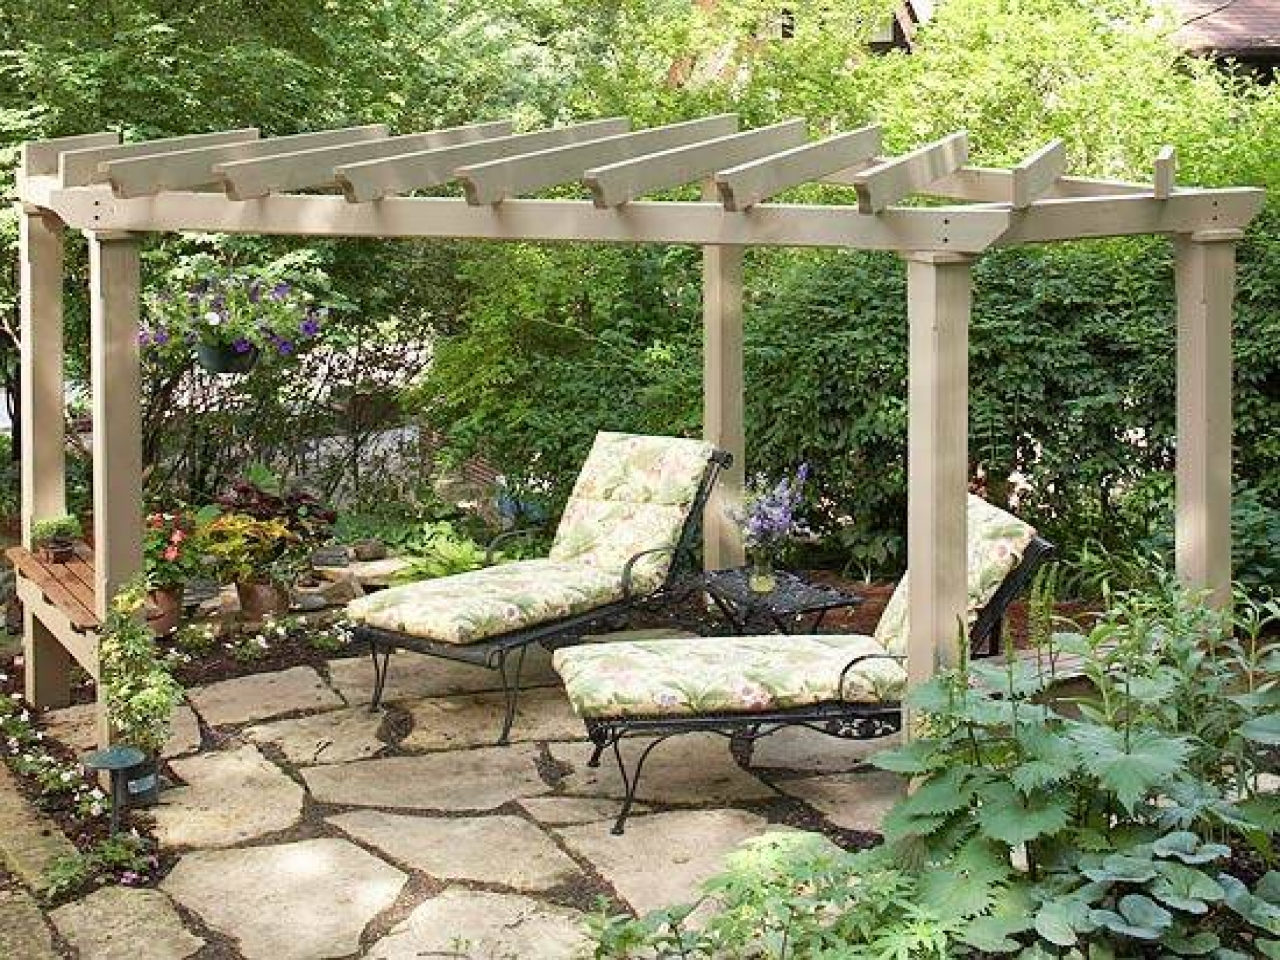 Low price pergola attached to house ideas garden landscape for Home designs ideas